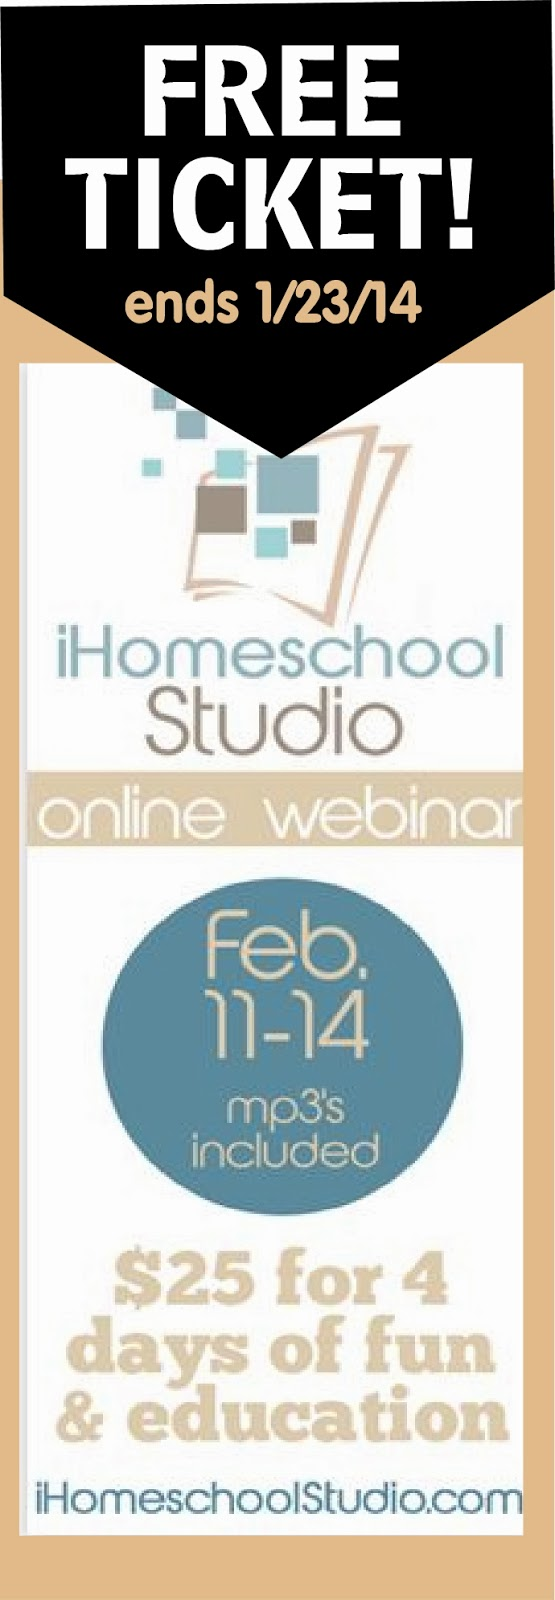 iHomeschool Studio homeschool webinar Feb 11-14, 2014